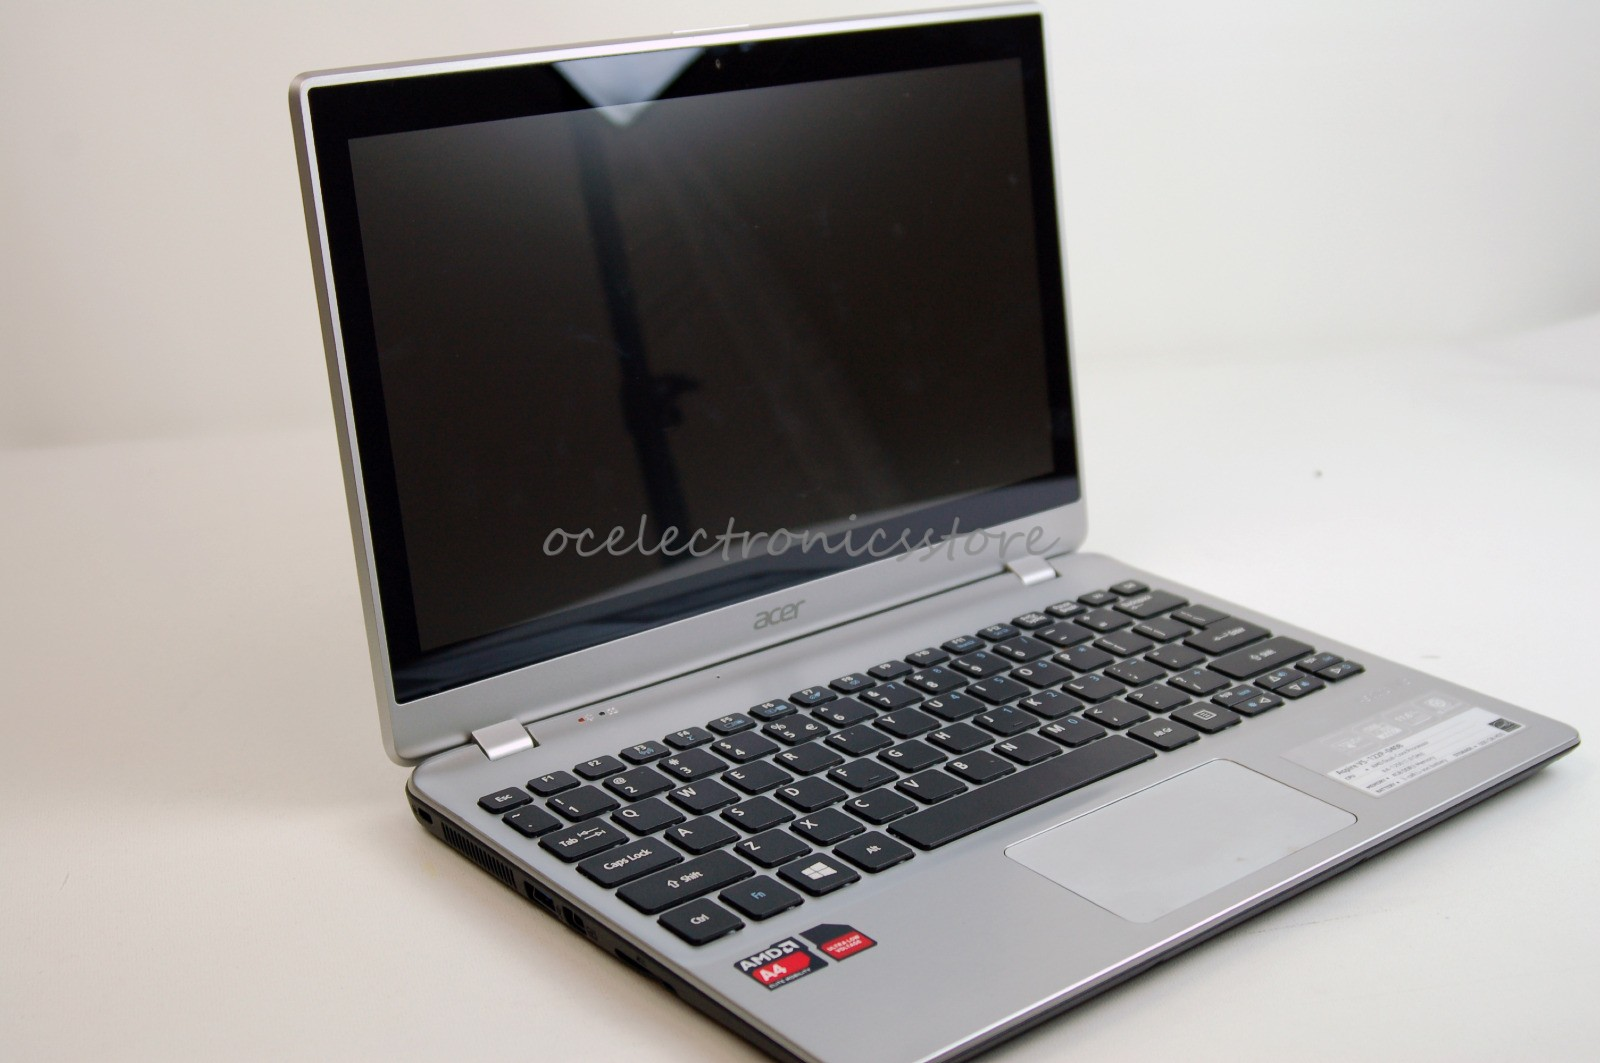 Jual Acer Aspire Slim V5 122p Silver Welcome To Lcd Led 116 One 132 132p 0408 11 6 500 Gb Amd 1 Ghz 4gb Ram